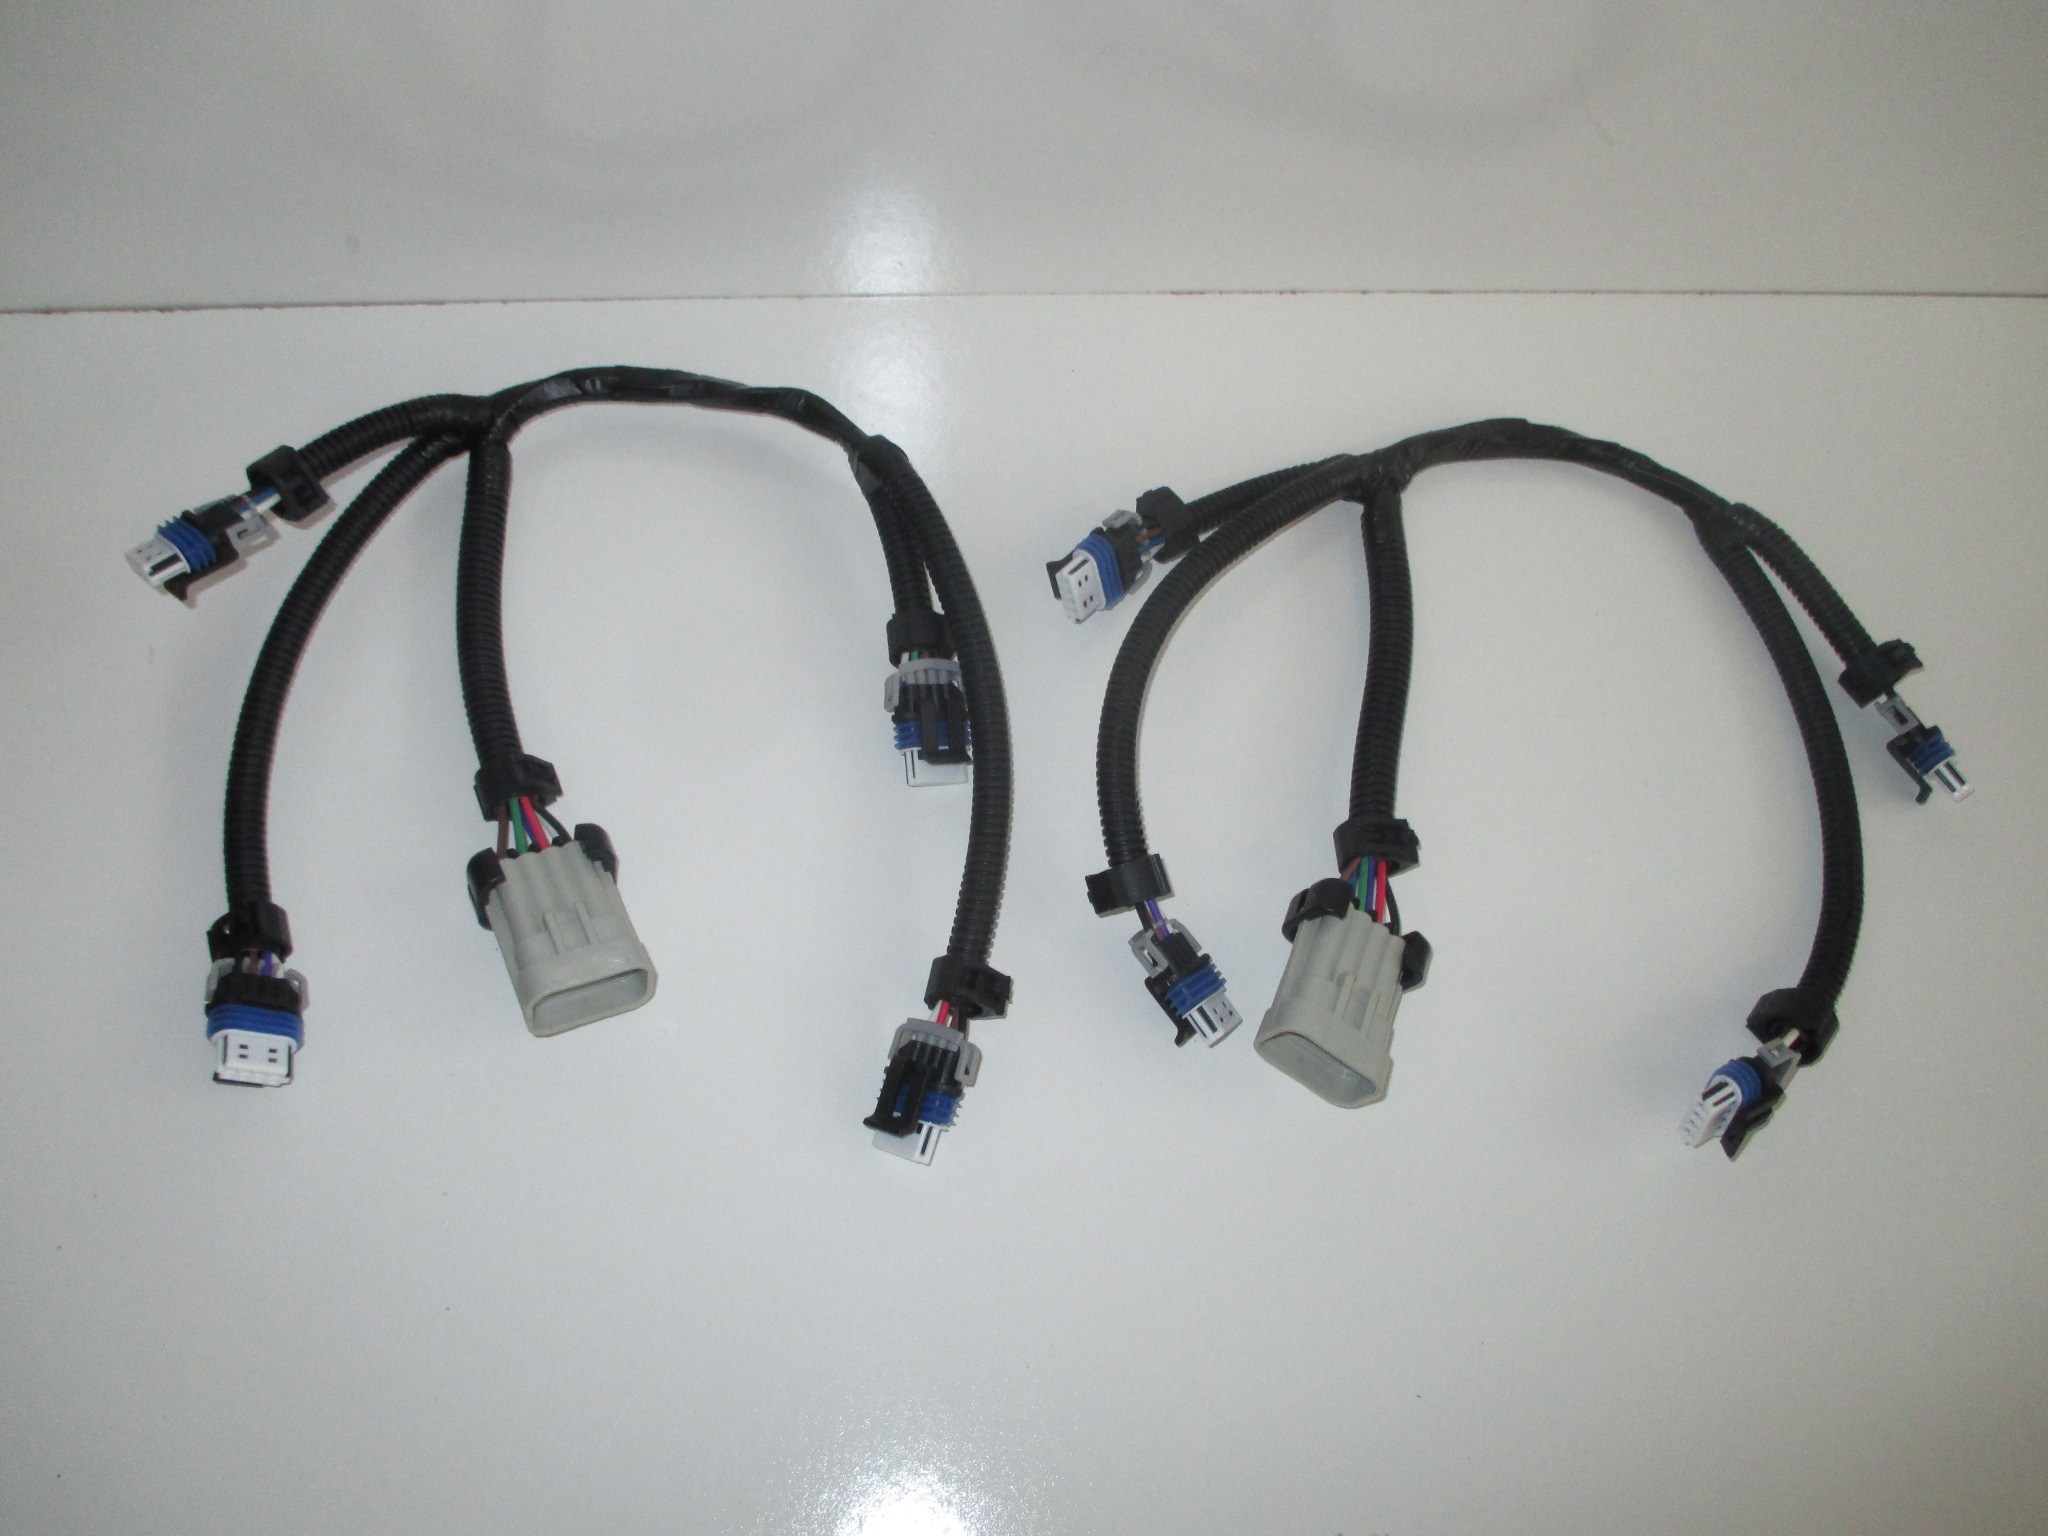 Gm Lq9 Coil Wiring Schematic Diagrams Diagram Set Of 2 Ignition Harnesses Lq4 Ls2 Ls7 Lsx D585 D581